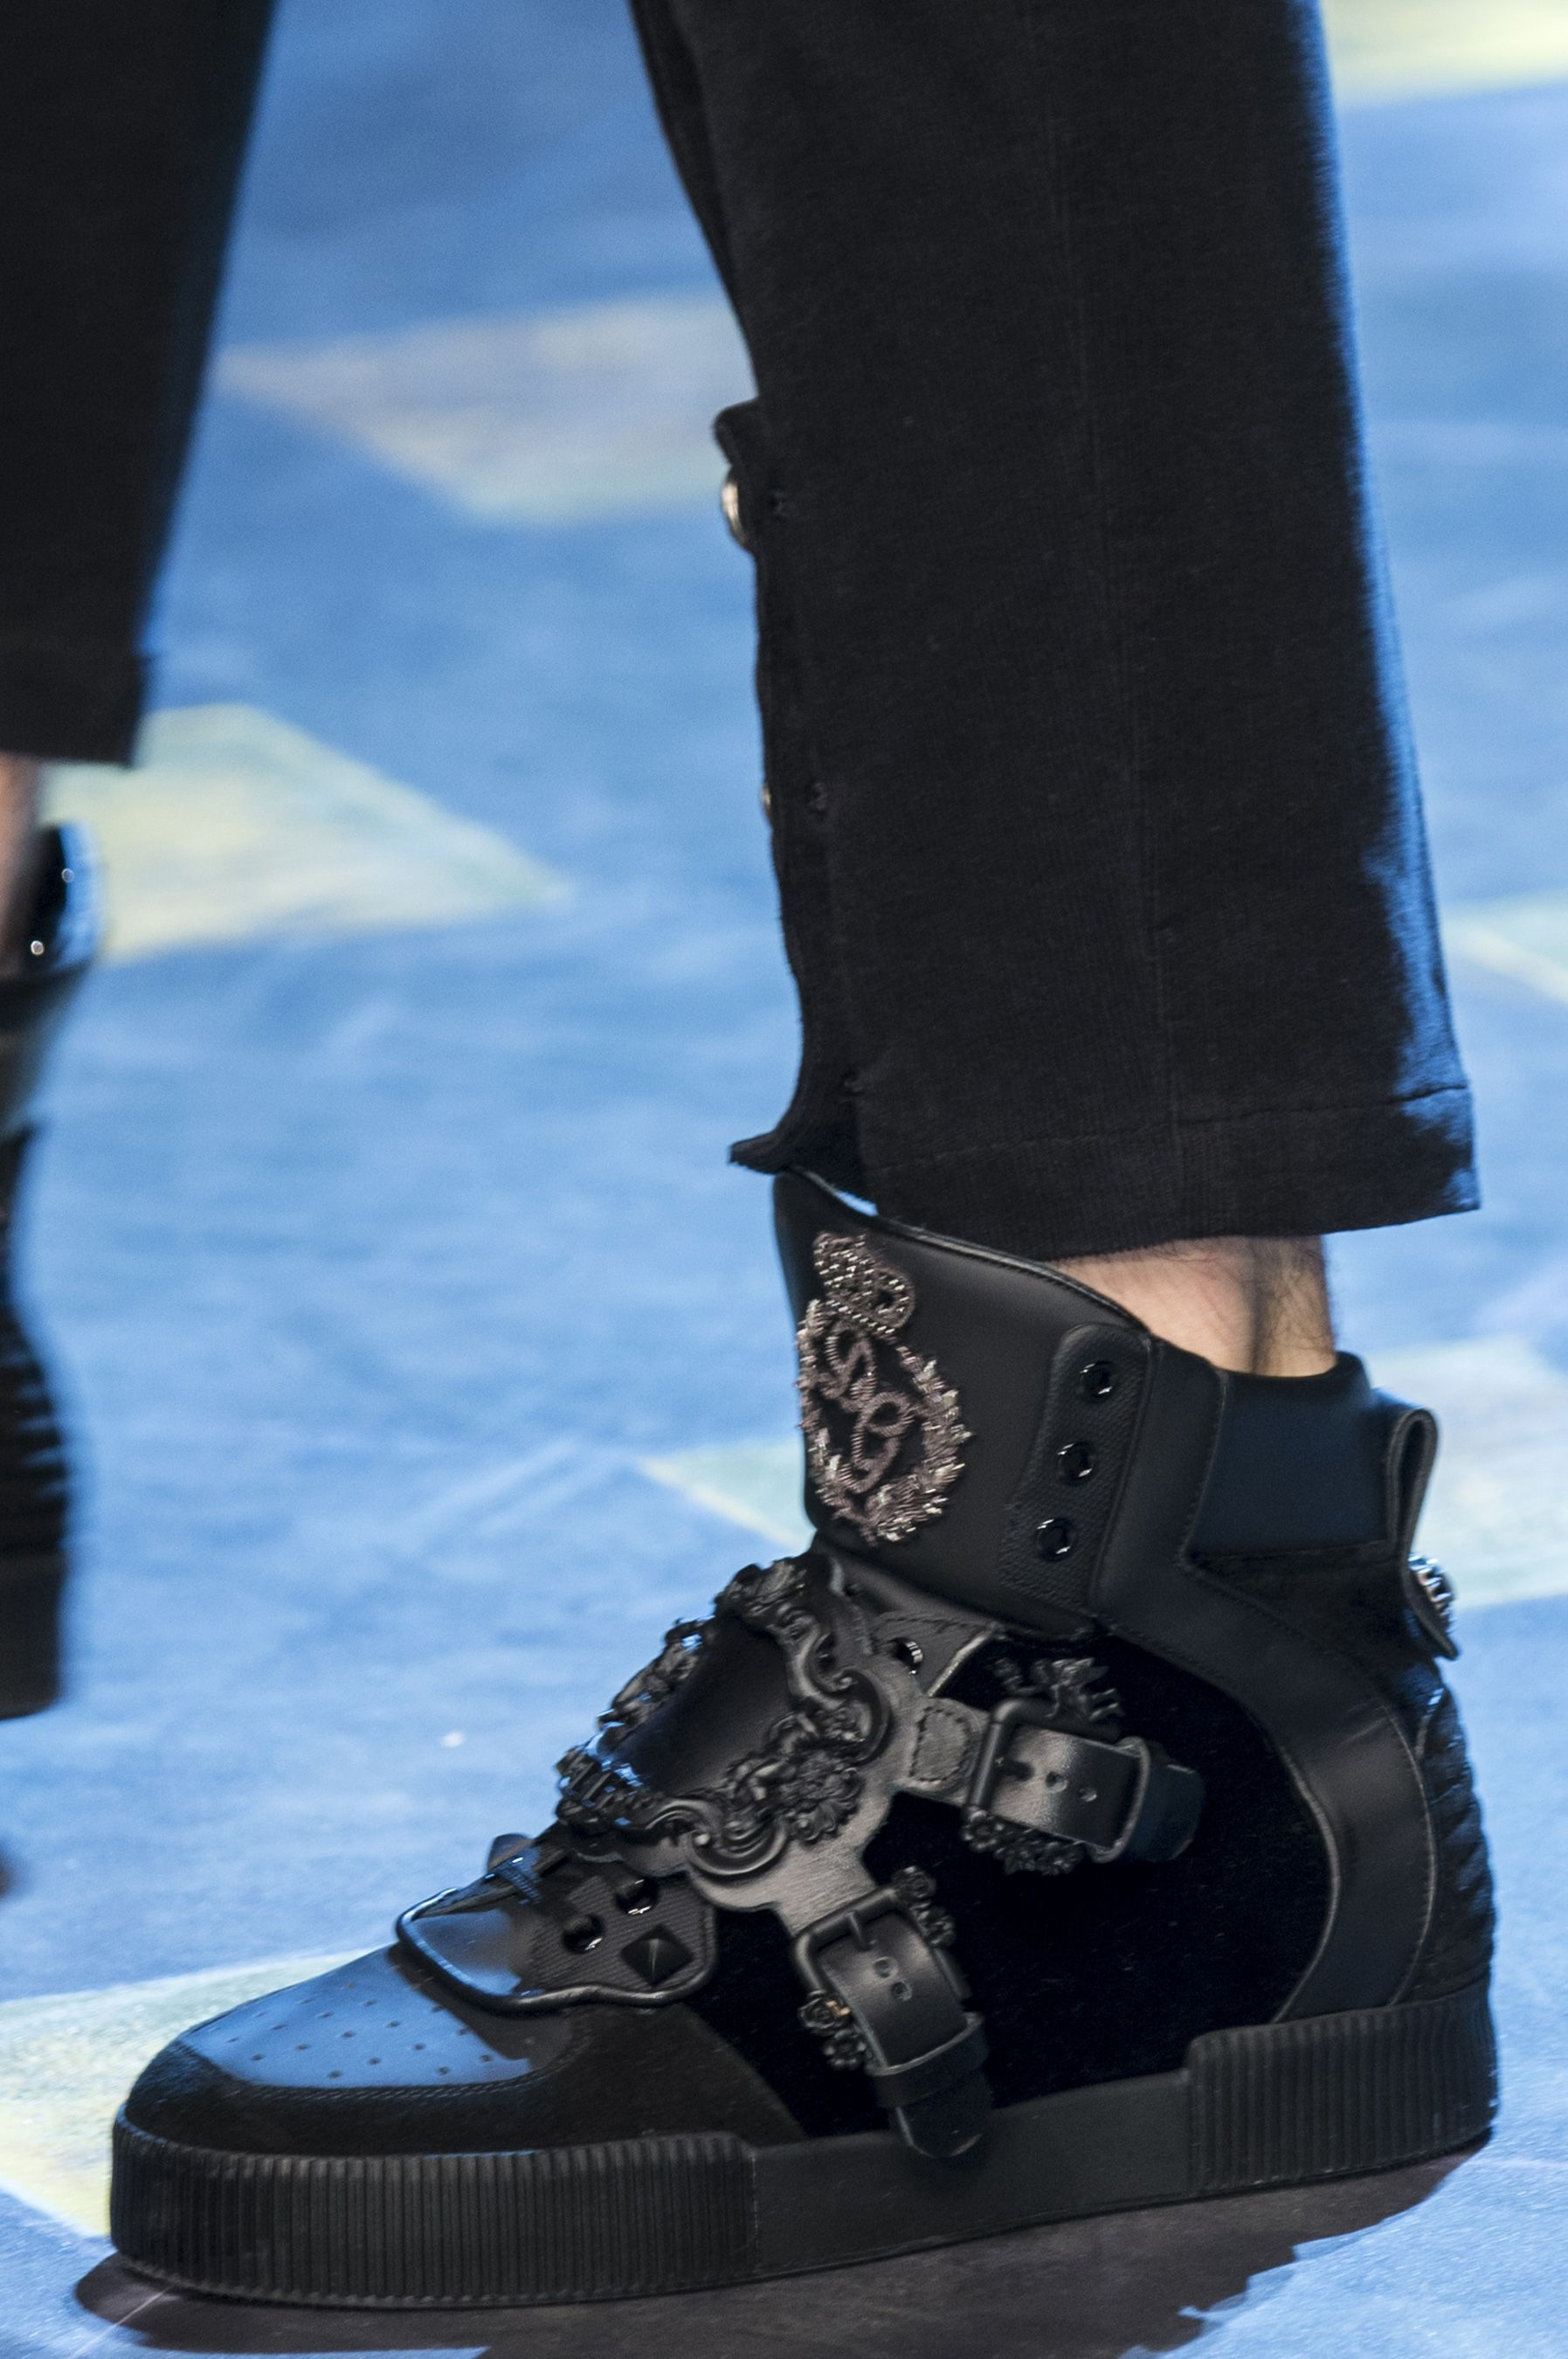 b2e890198 Dolce & Gabbana | Menswear Accessories | Fashion, Mens fashion, Men ...